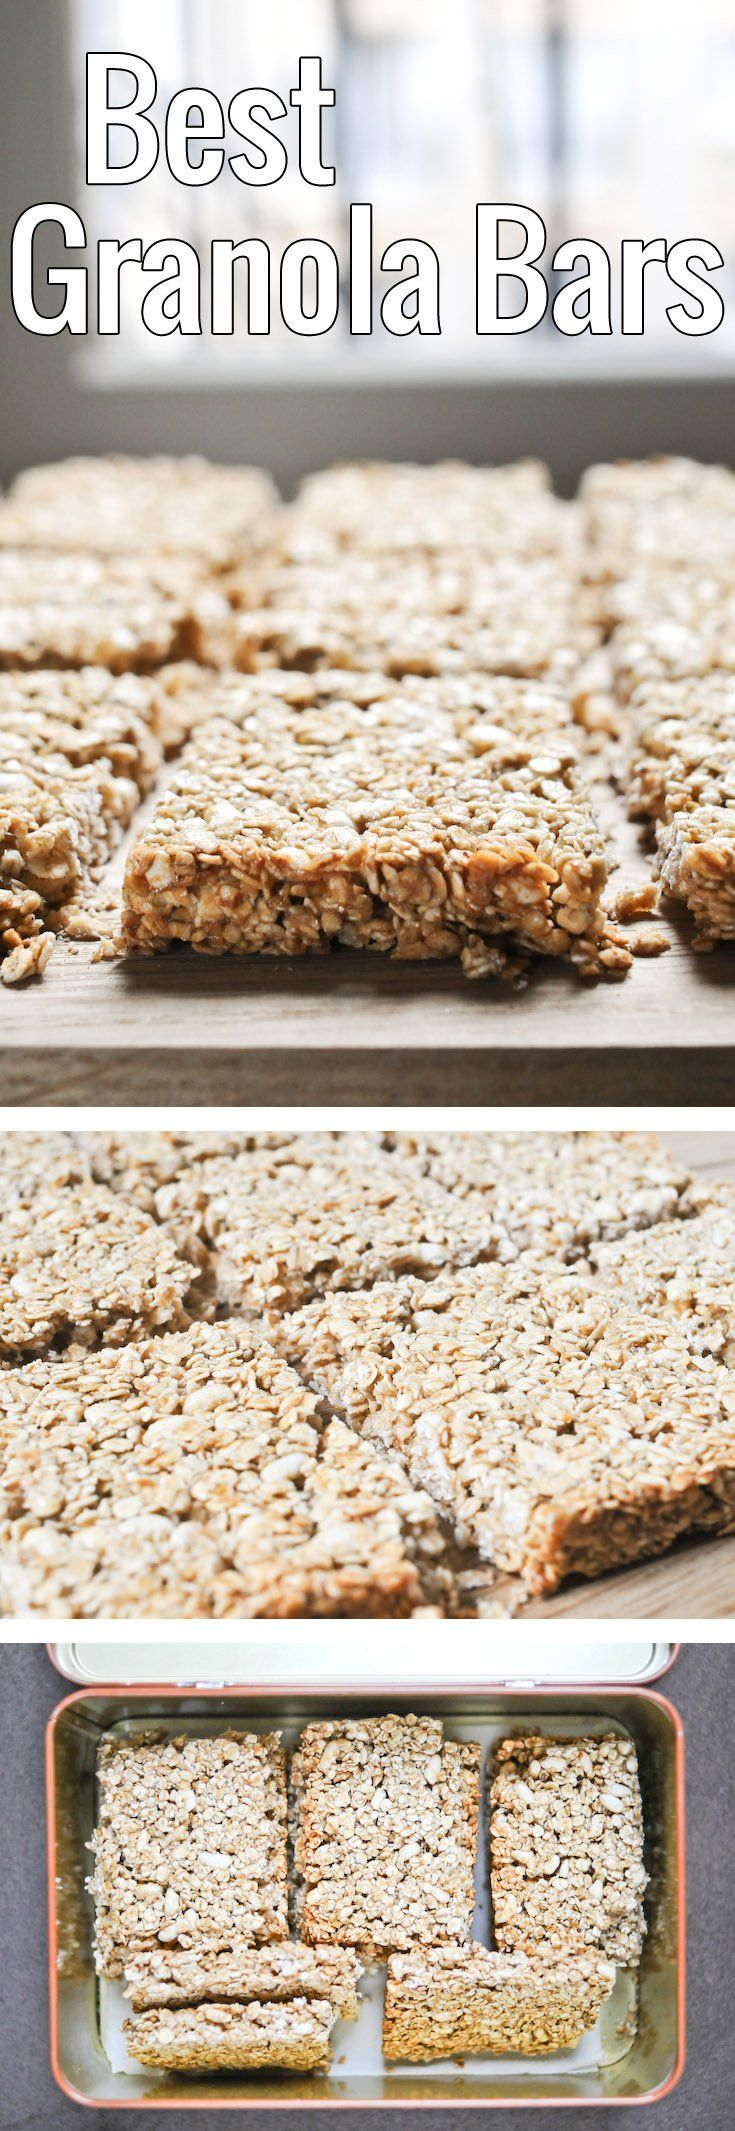 These simple granola bars make the perfect portable snack for both adults and kids. Customize to your heart's content with favorite nuts and dried fruits!